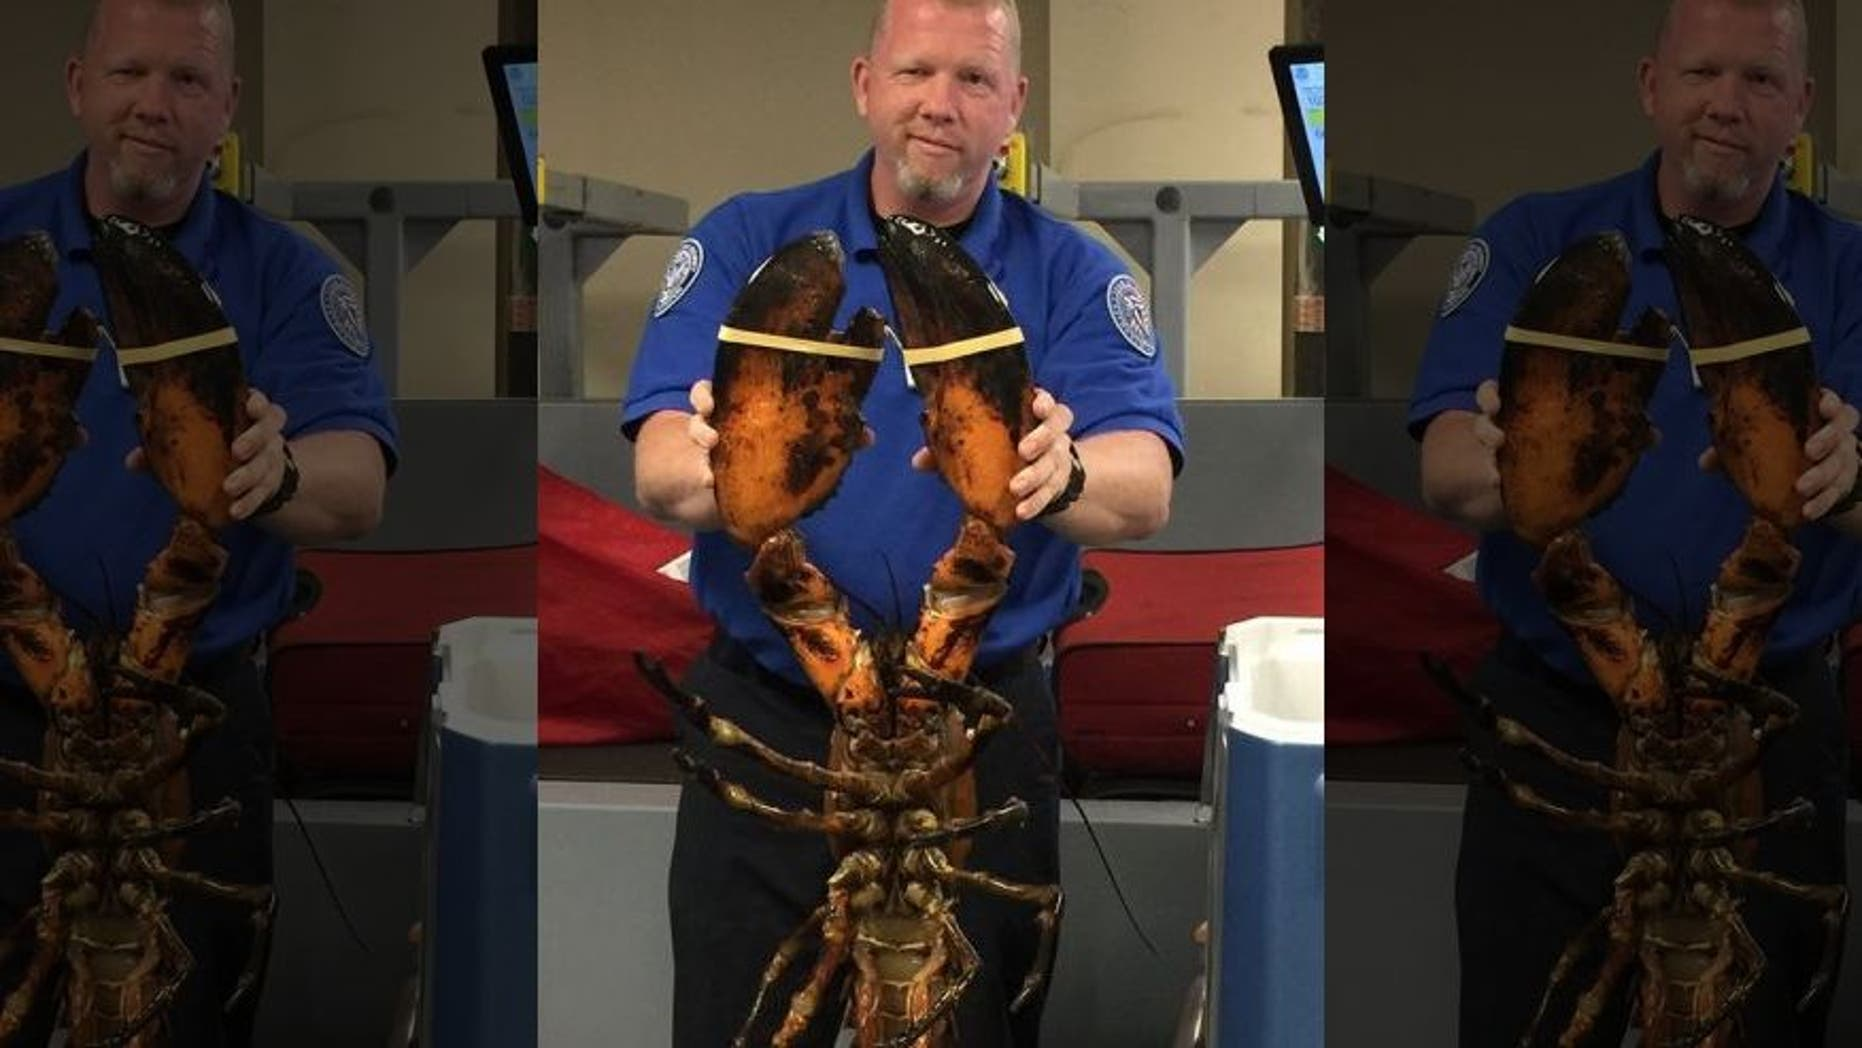 A TSA agent holds a live lobster found in a passenger's luggage at Boston's Logan International Airport.